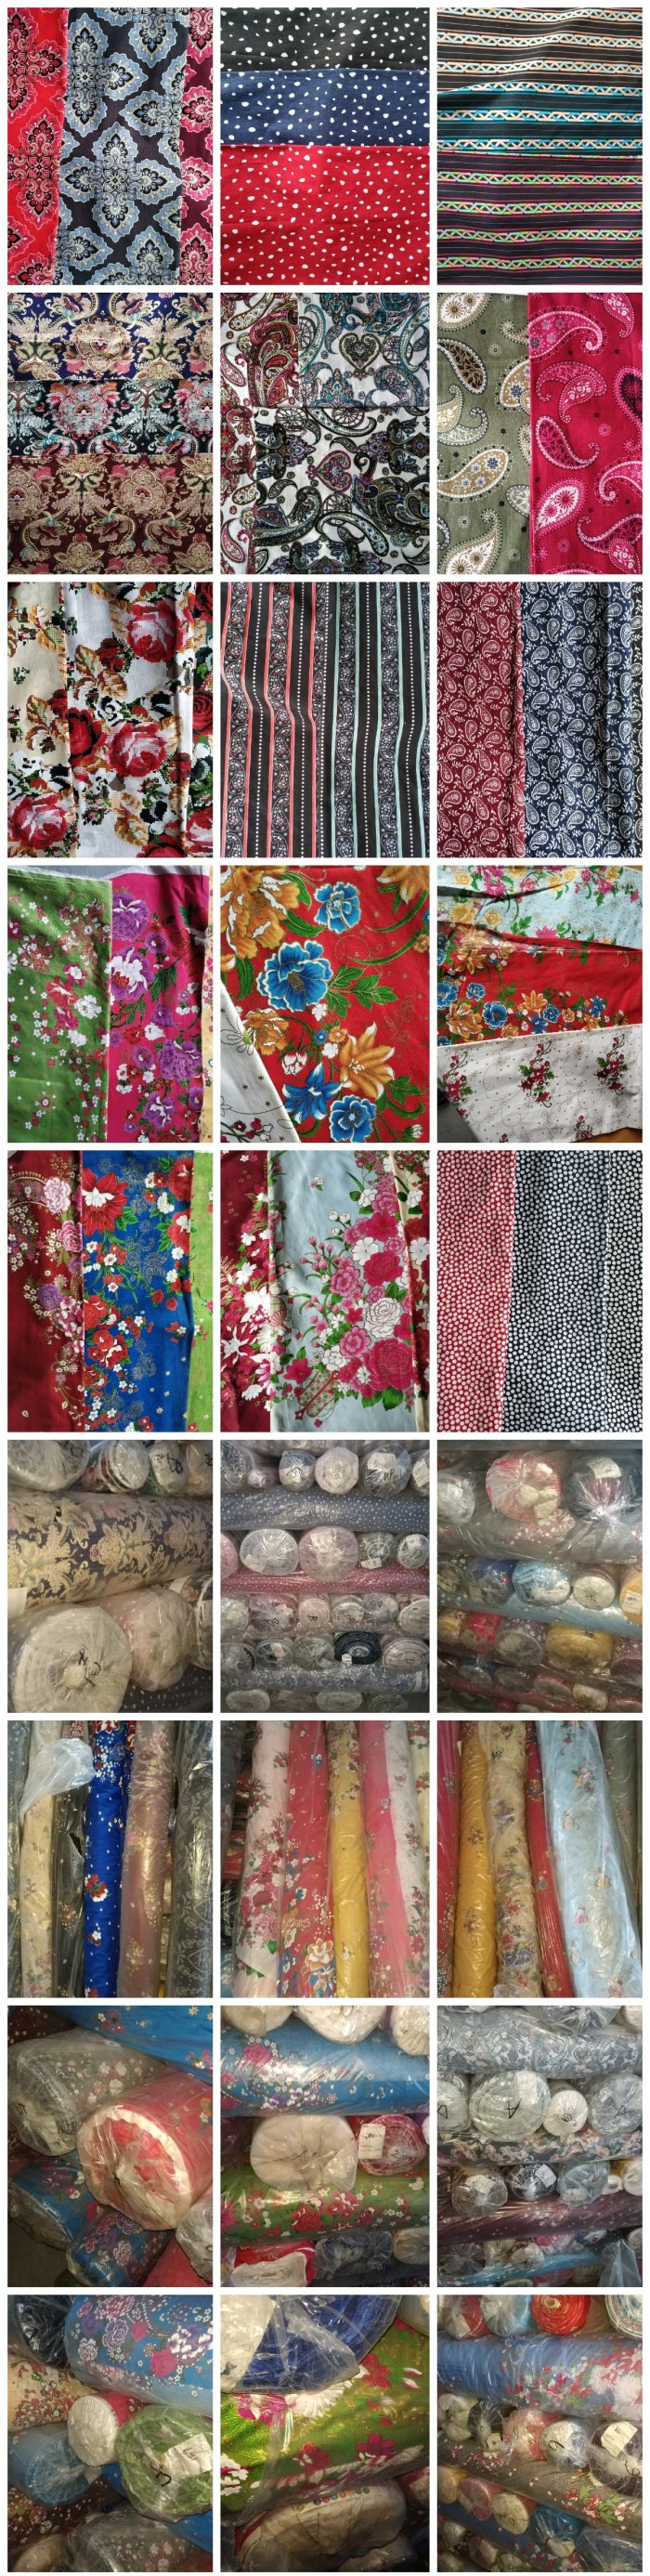 60*60 JINOOTEX Woven 20S Cotton Print Fabric For Sale